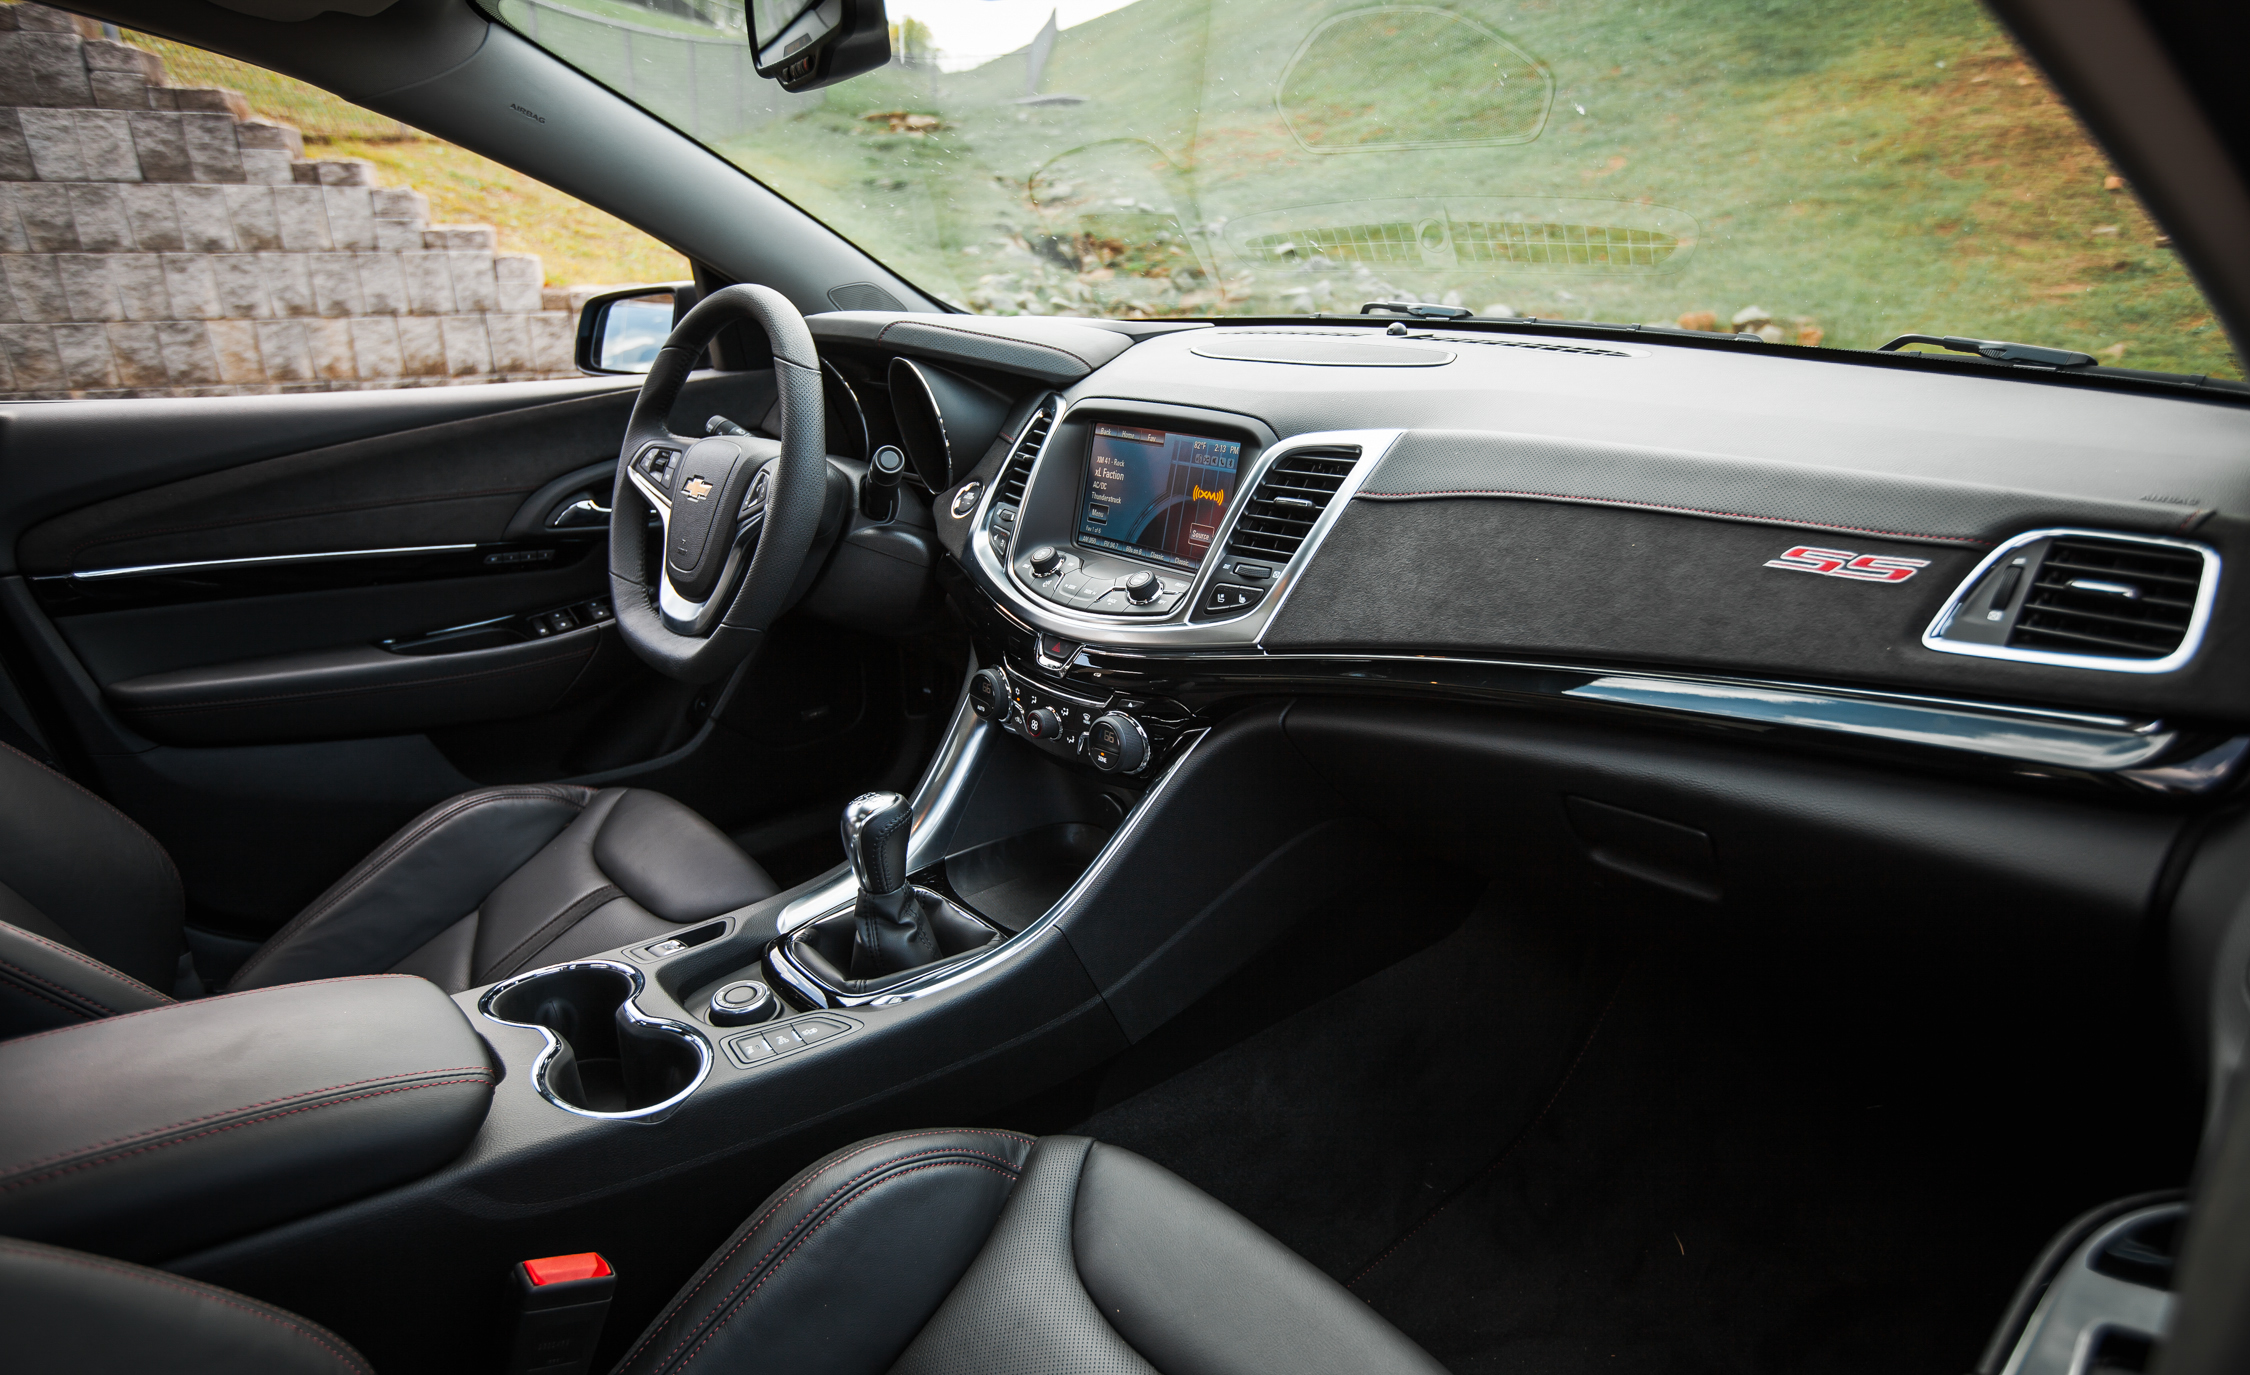 2015 Chevrolet SS Interior Dashboard